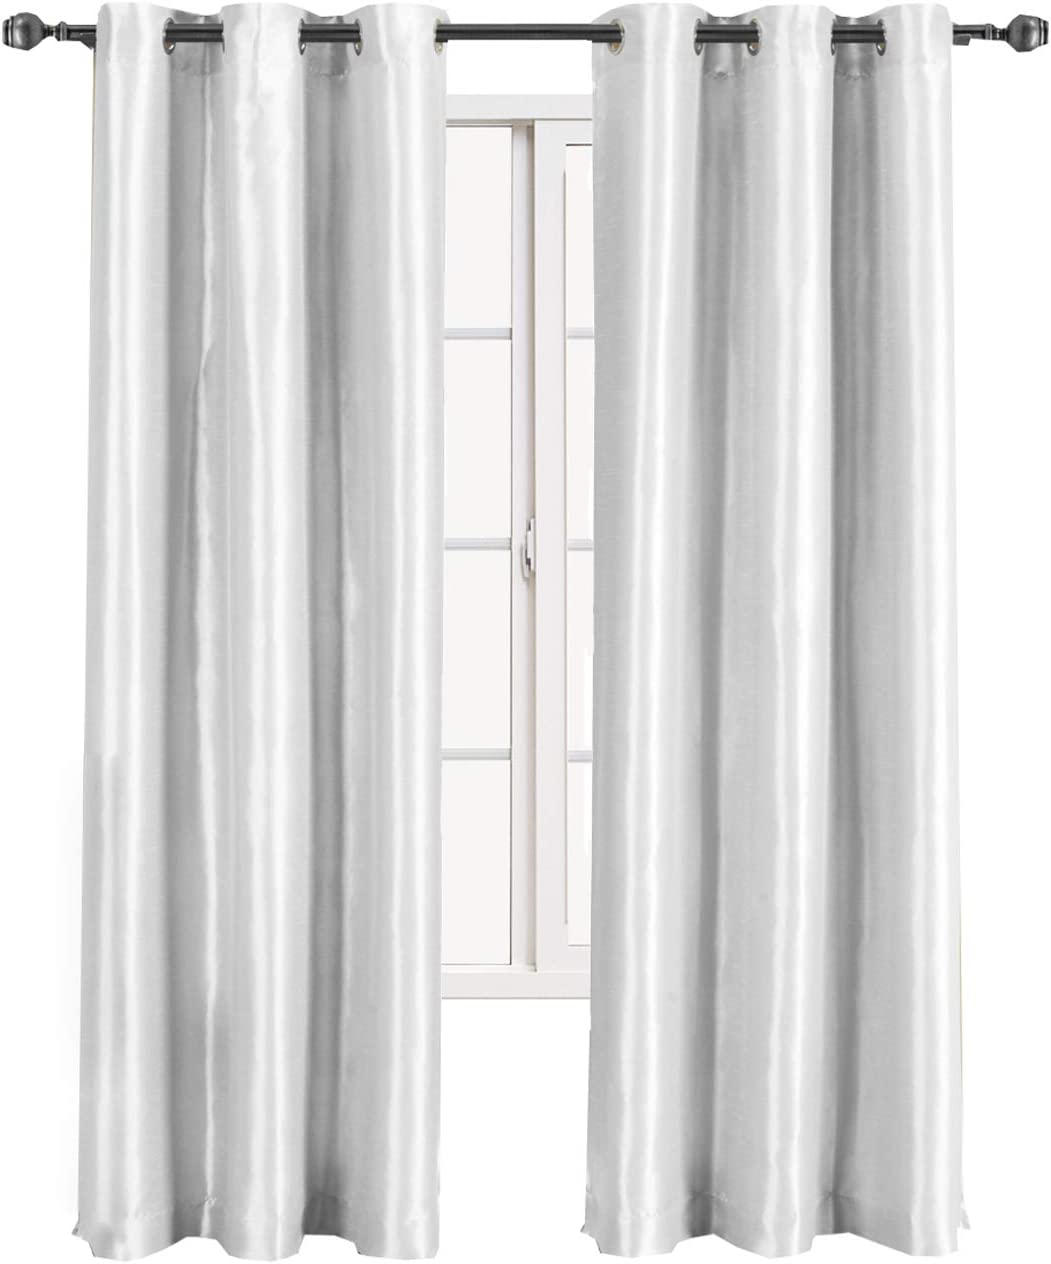 sheetsnthings Soho 42-Inch Wide x 108-Inch Long, Single Grommet Top Thermal Blackout Curtains, White